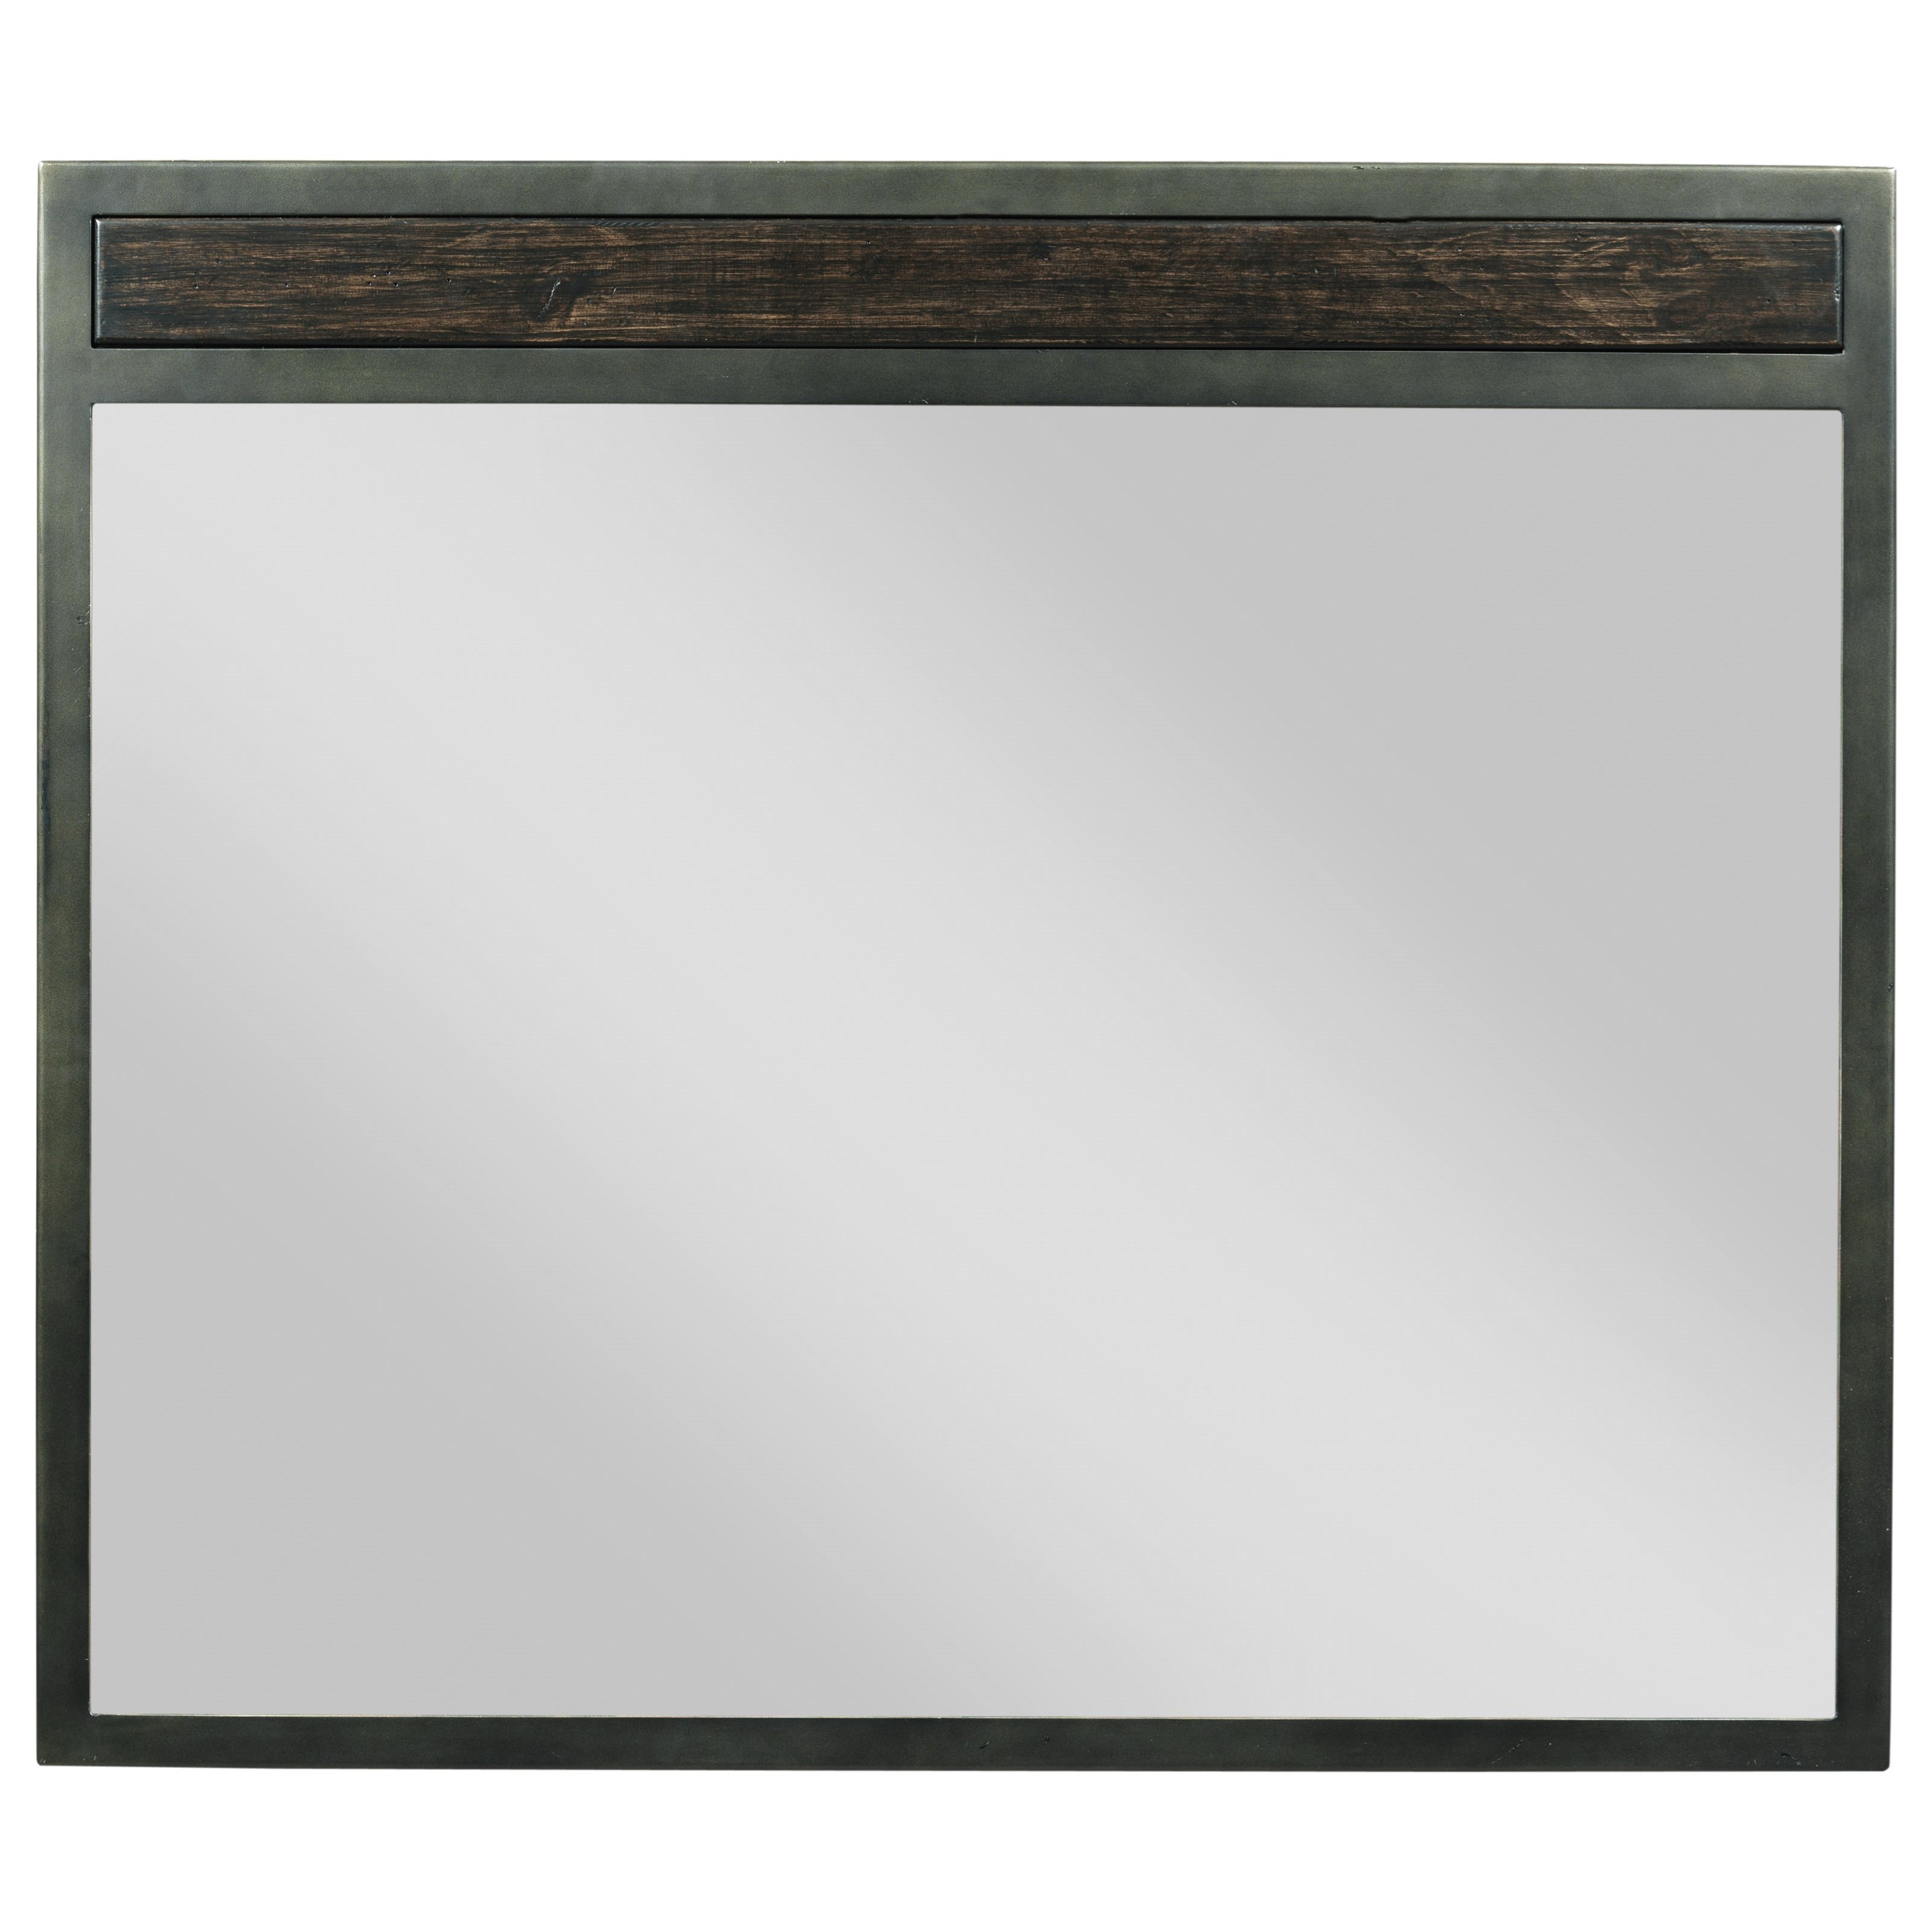 Plank Road Shelley Mirror                               by Kincaid Furniture at Godby Home Furnishings